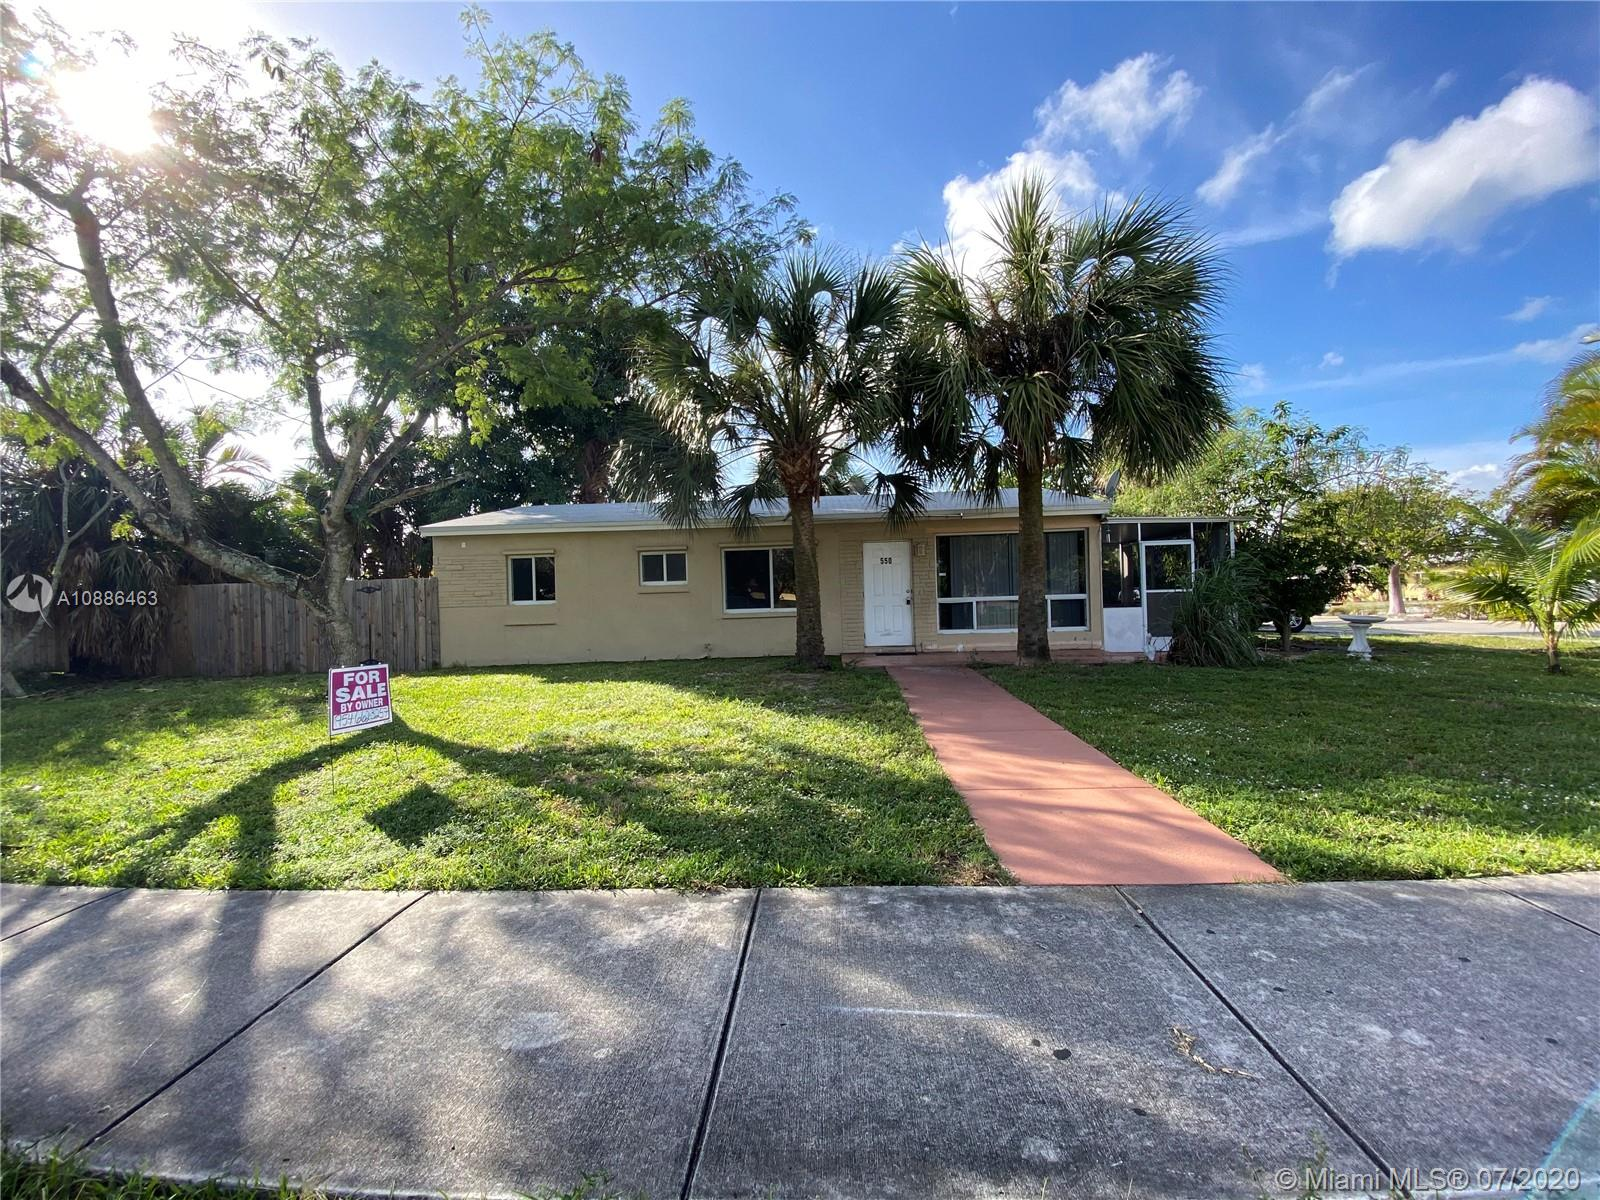 Great property on corner lot, roof and A/C about 2 years old, new bathroom.